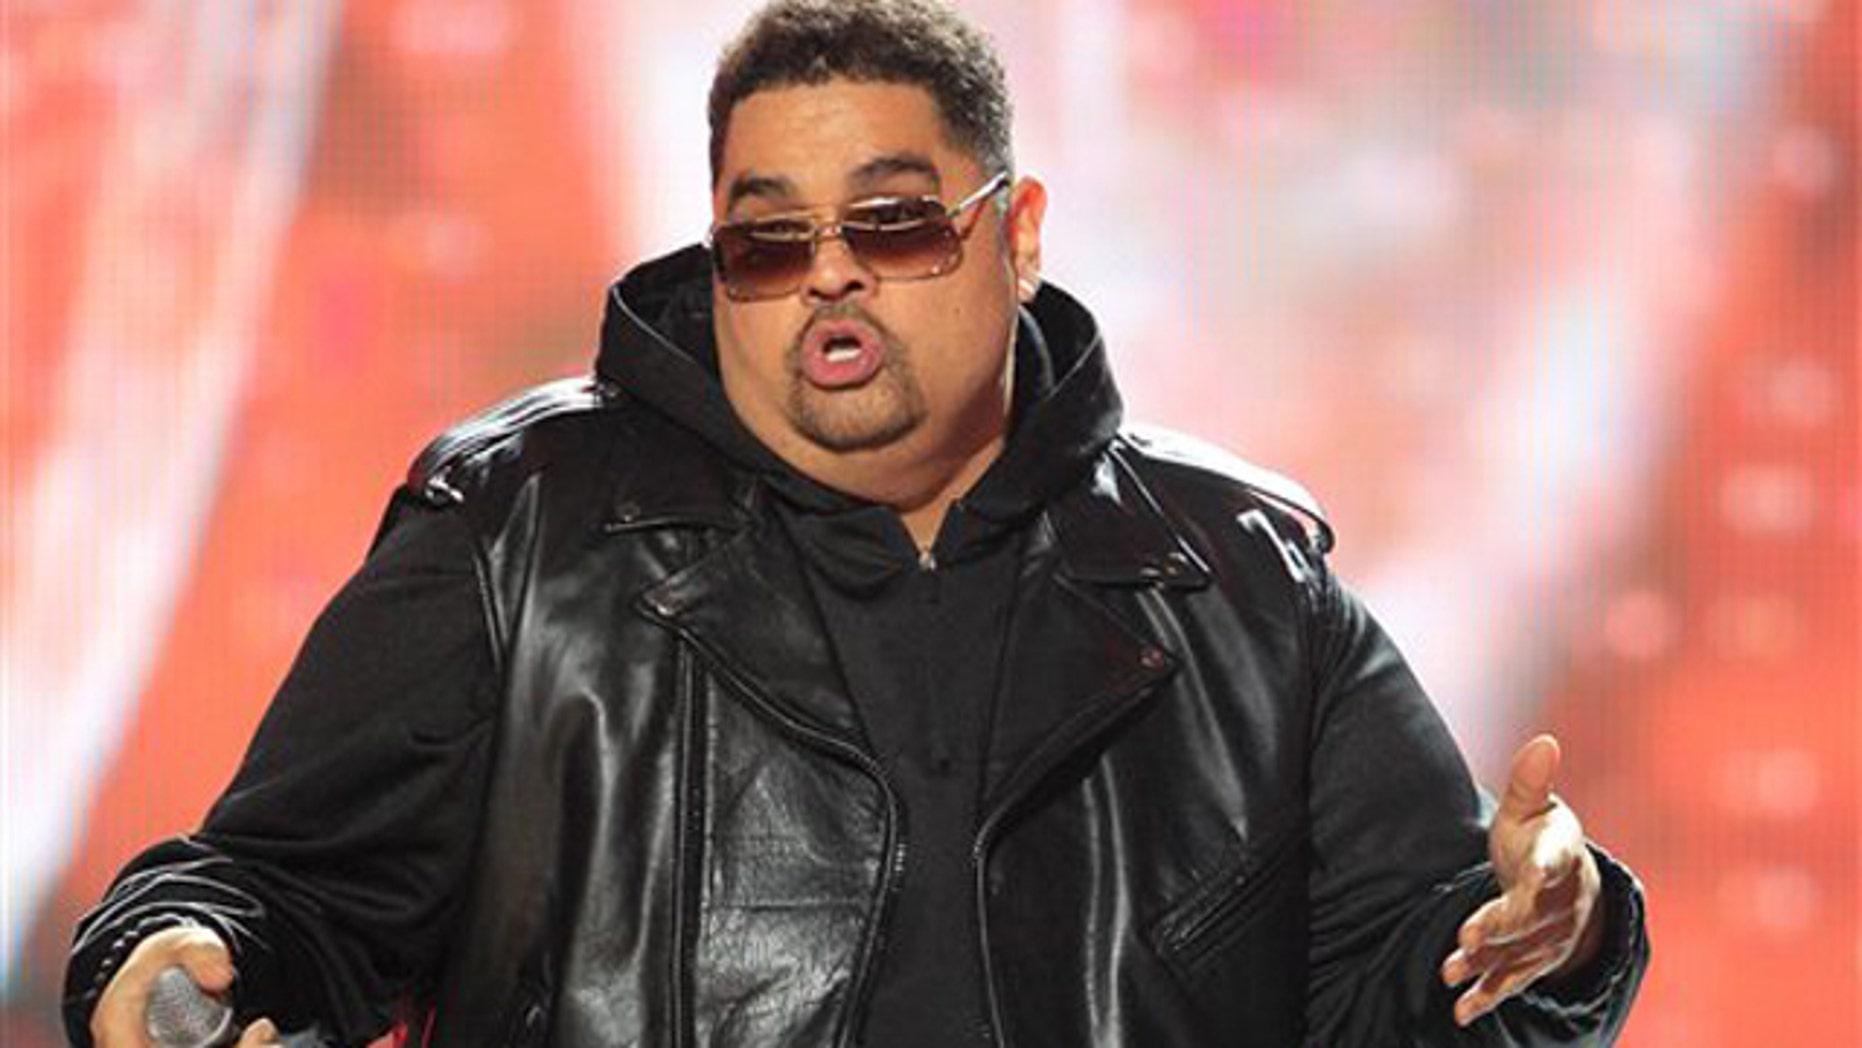 In this Oct. 1, 2011 photo, rapper Heavy D, also known as Dwight Arrington Myers, performs during the BET Hip Hop Awards in Atlanta.